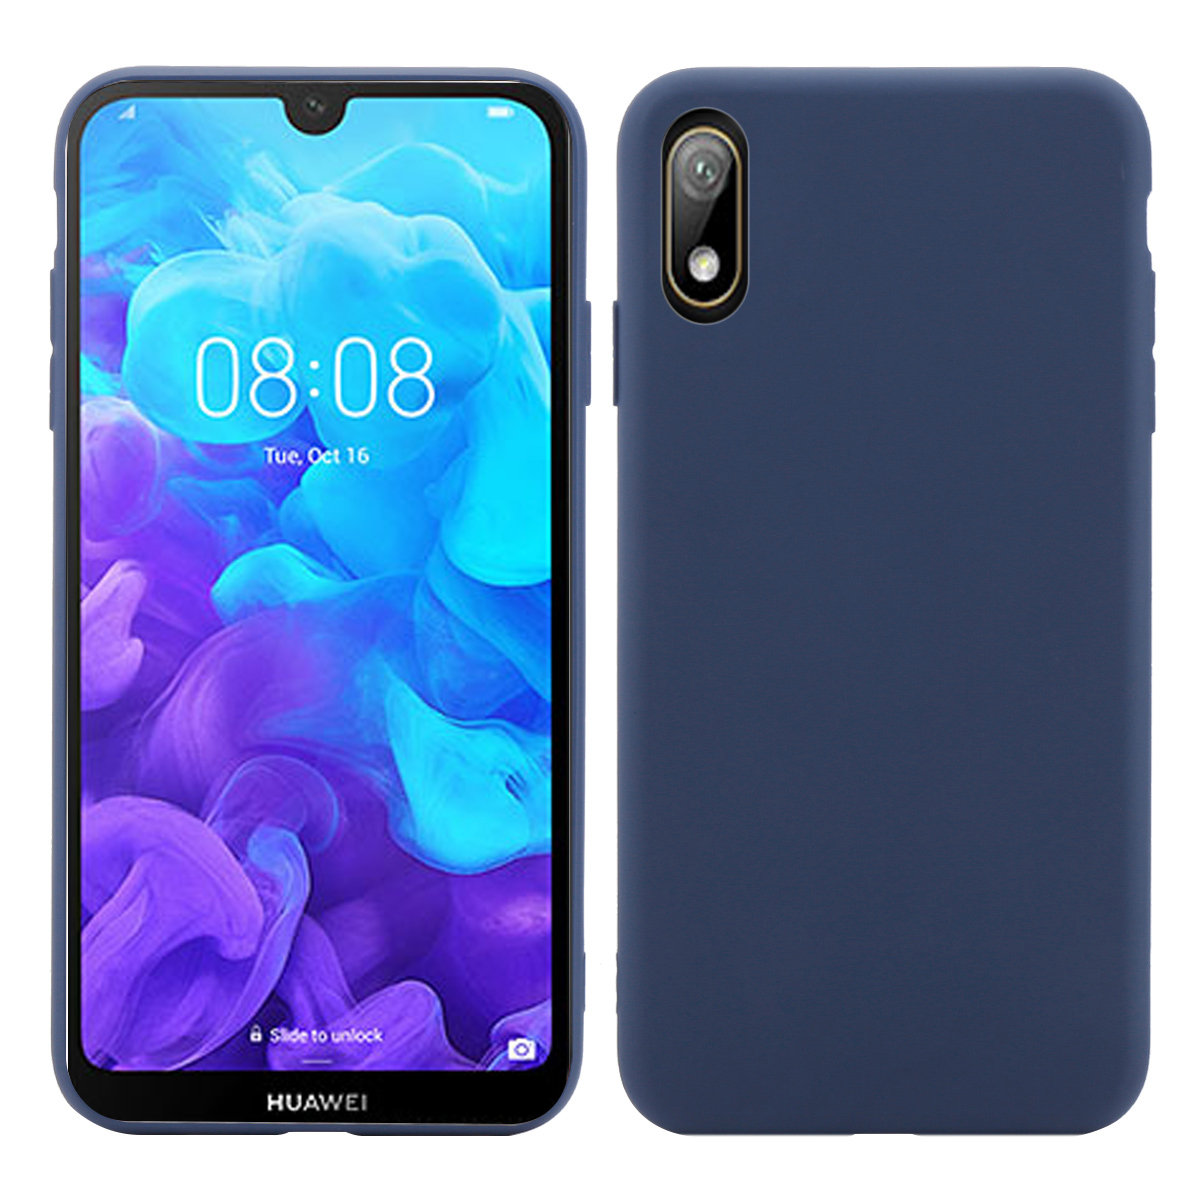 For <font><b>Huawei</b></font> Y5 <font><b>2019</b></font> Y6 <font><b>2019</b></font> <font><b>Case</b></font> Soft Silicone Slim Candy Color Matte TPU <font><b>Cover</b></font> For <font><b>Huawei</b></font> Y6 Pro <font><b>2019</b></font> <font><b>Y9</b></font> <font><b>2019</b></font> <font><b>Case</b></font> Shockproof image